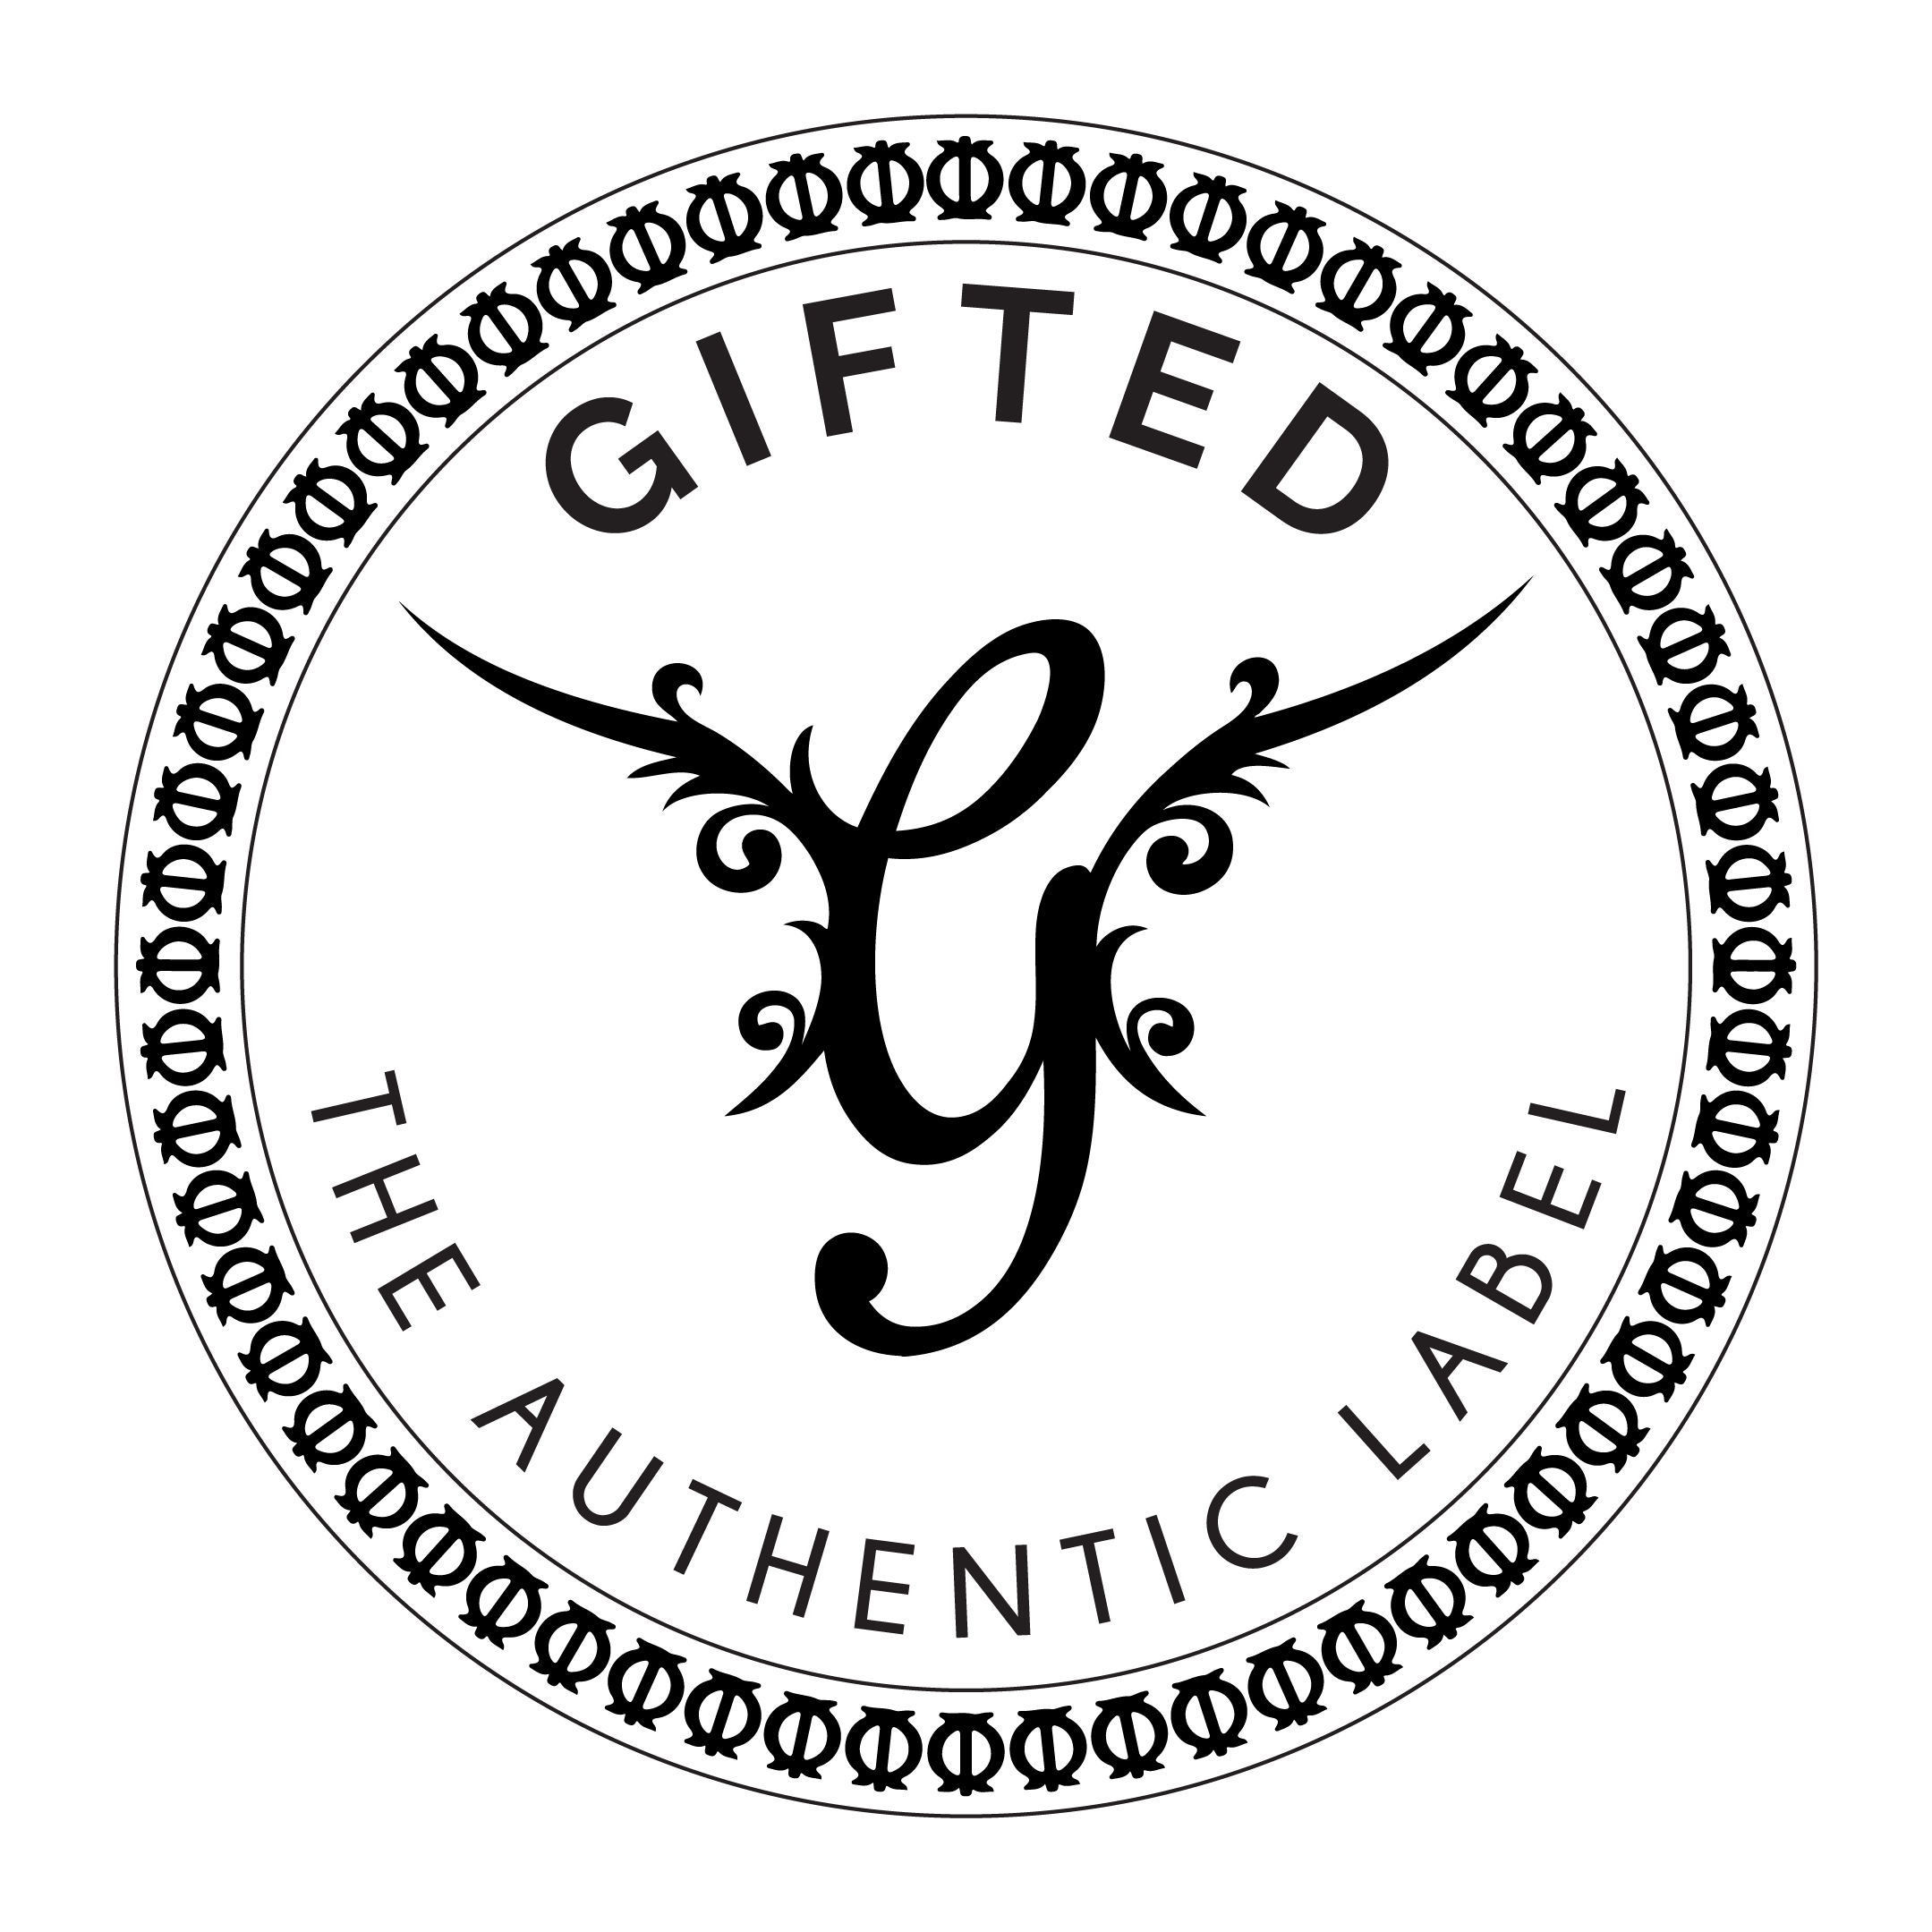 Gifted Clothing Label